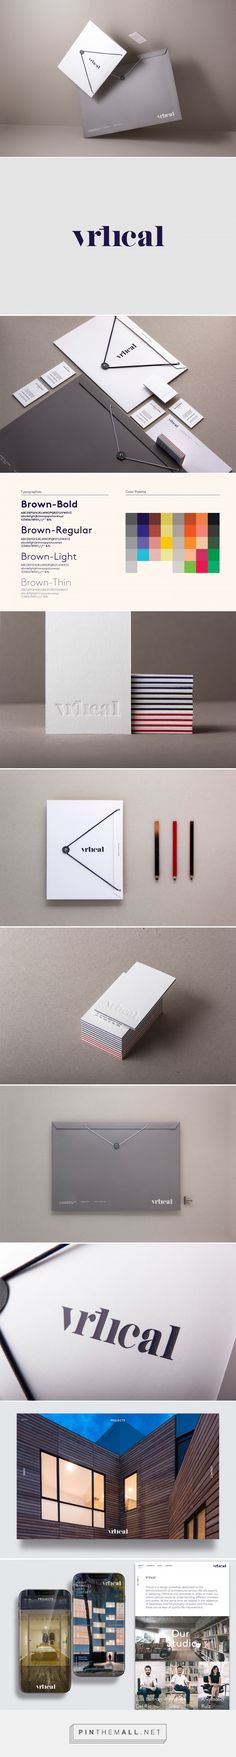 Vrtical on Behance..